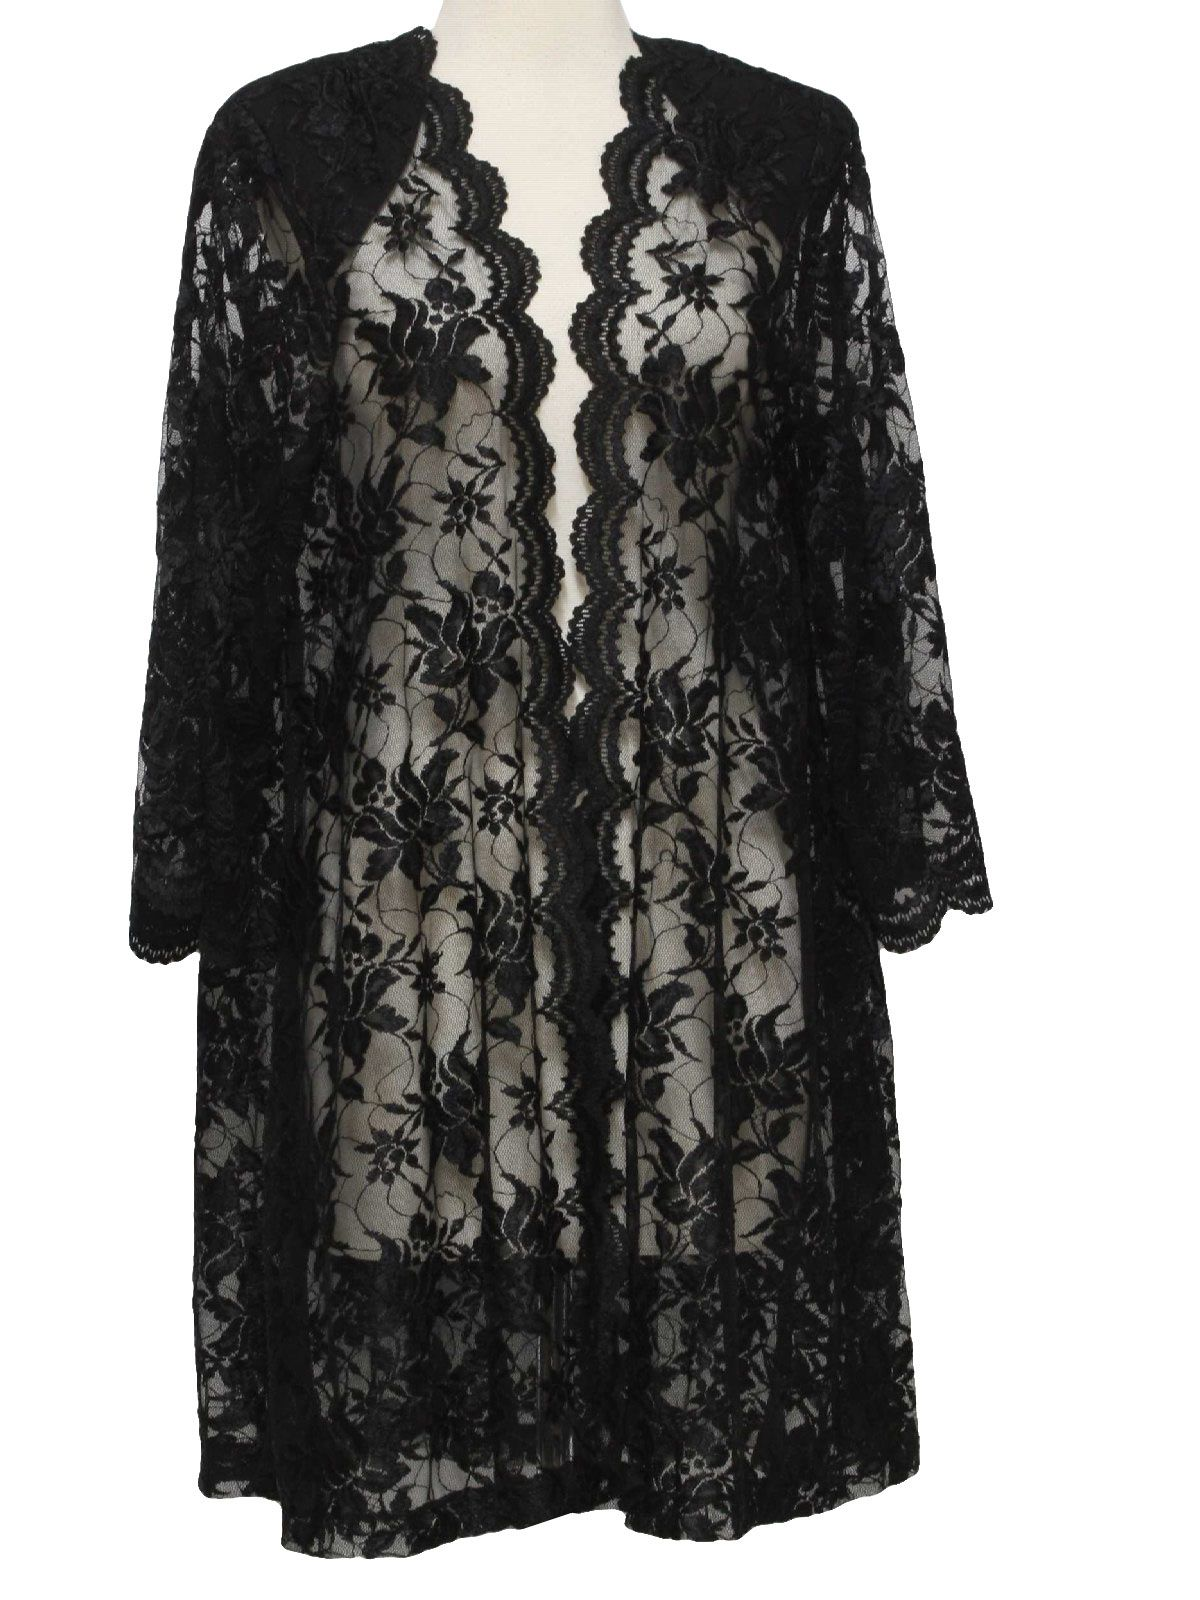 70s -Decisions- Womens black, blended rayon, floral lace, jacket, having bell shaped, scalloped edge, longsleeves, as is the clutch front. Would look so cool over a tight black dress and belted